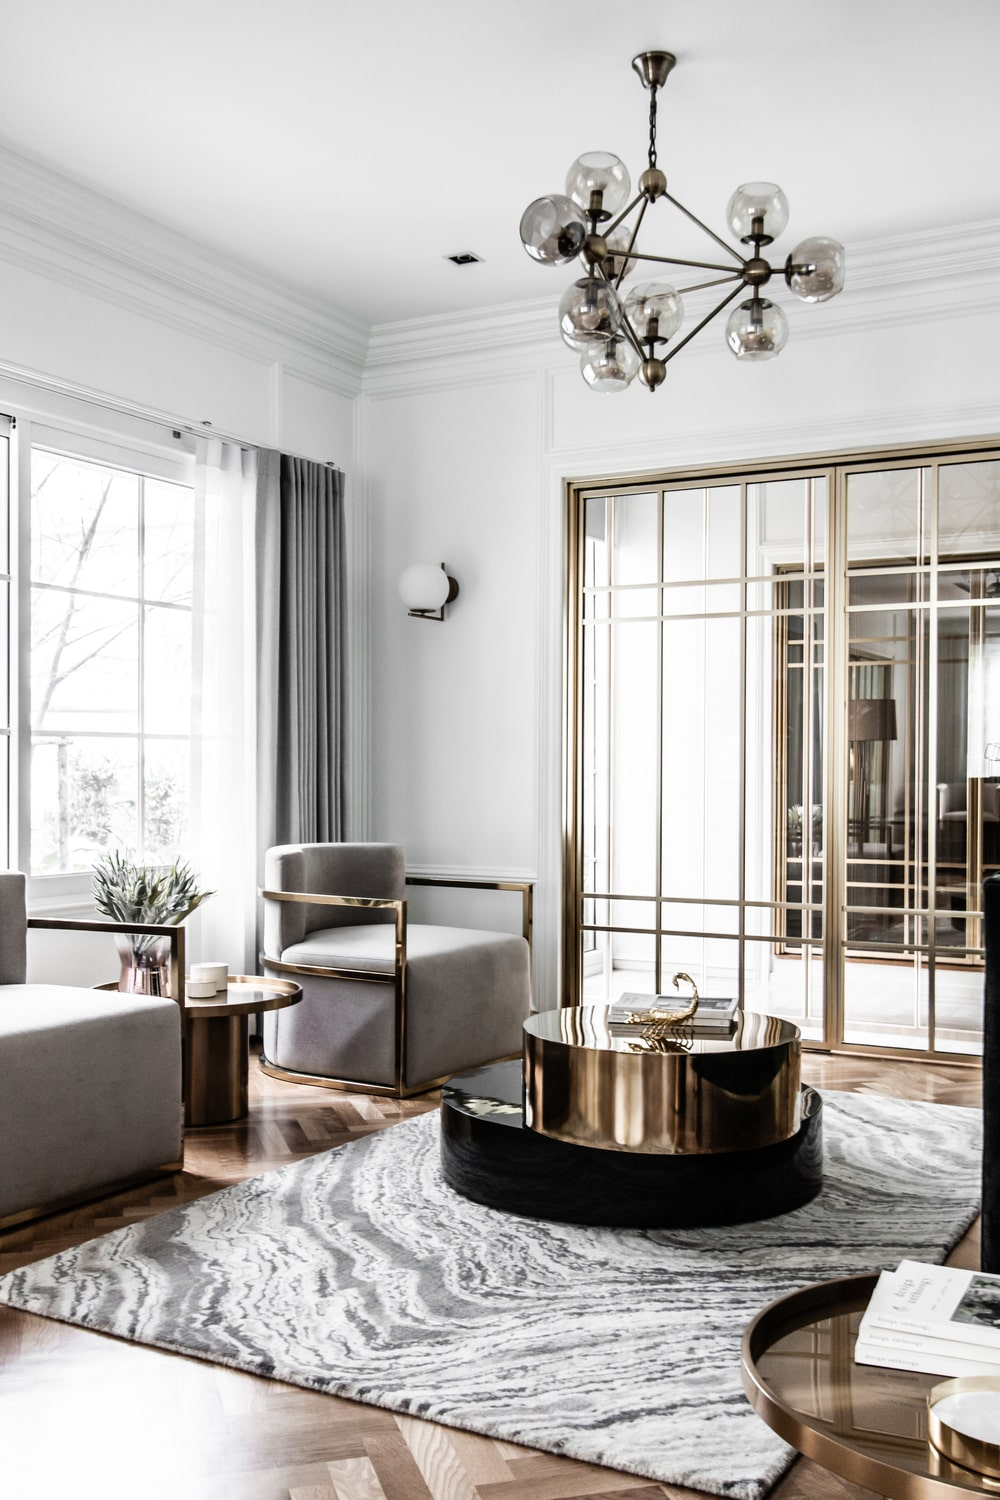 These are then topped with a modern decorative chandelier over the coffee table that stands out against the light area rug.